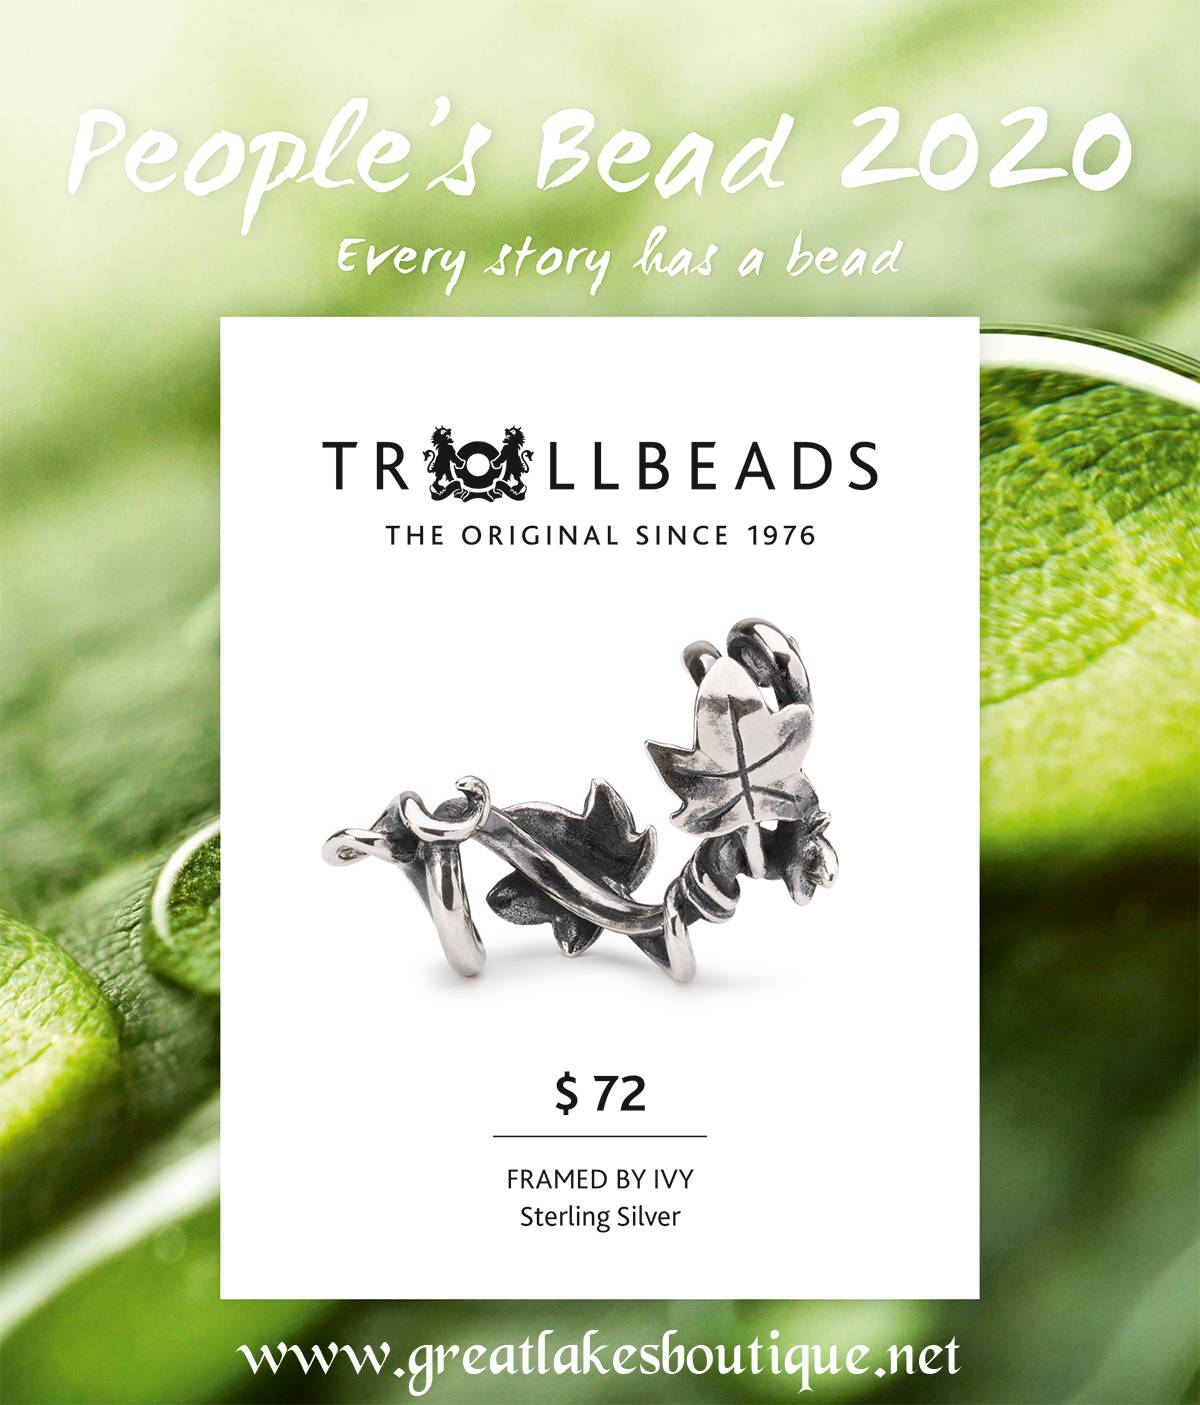 Troll Beads Christmas Cards 2020 Trollbeads People's Bead 2020 – Great Lakes Boutique